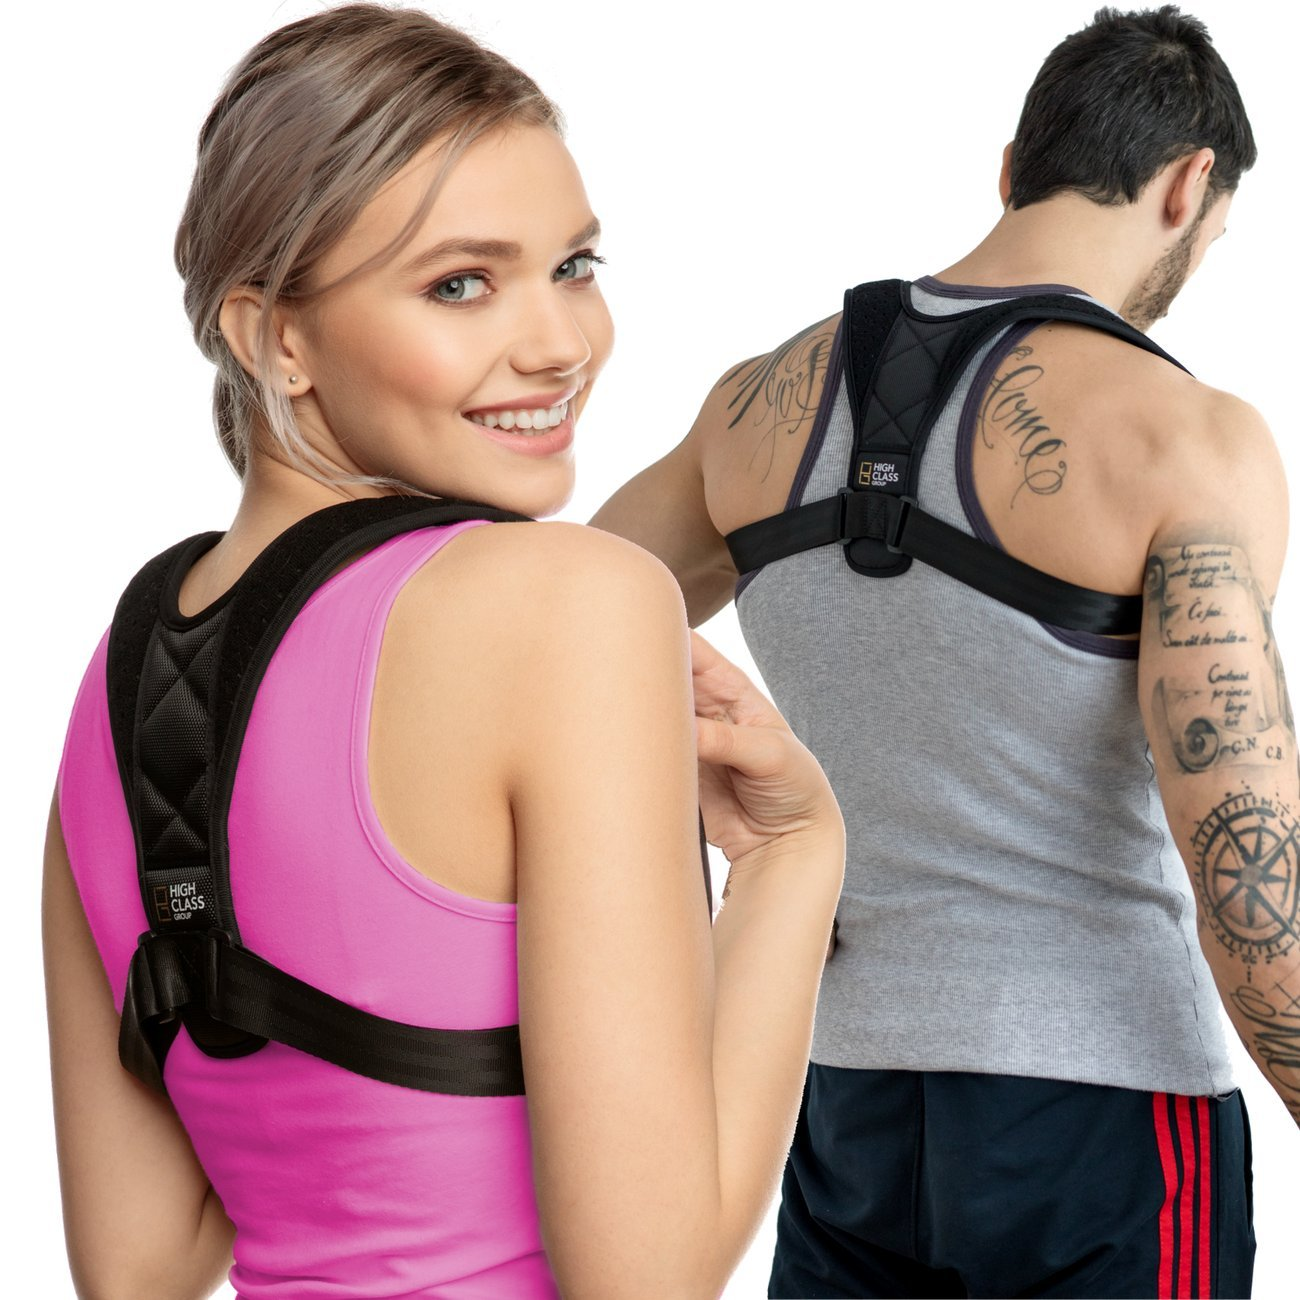 High Class Group | Posture Corrector for Women - Men | Relieves your Back Pain and Retrains Shoulders | Adjustable Strap Made of Soft Breathable Neoprene for Extra Comfort | Back Brace for Upper Back by High Class Group